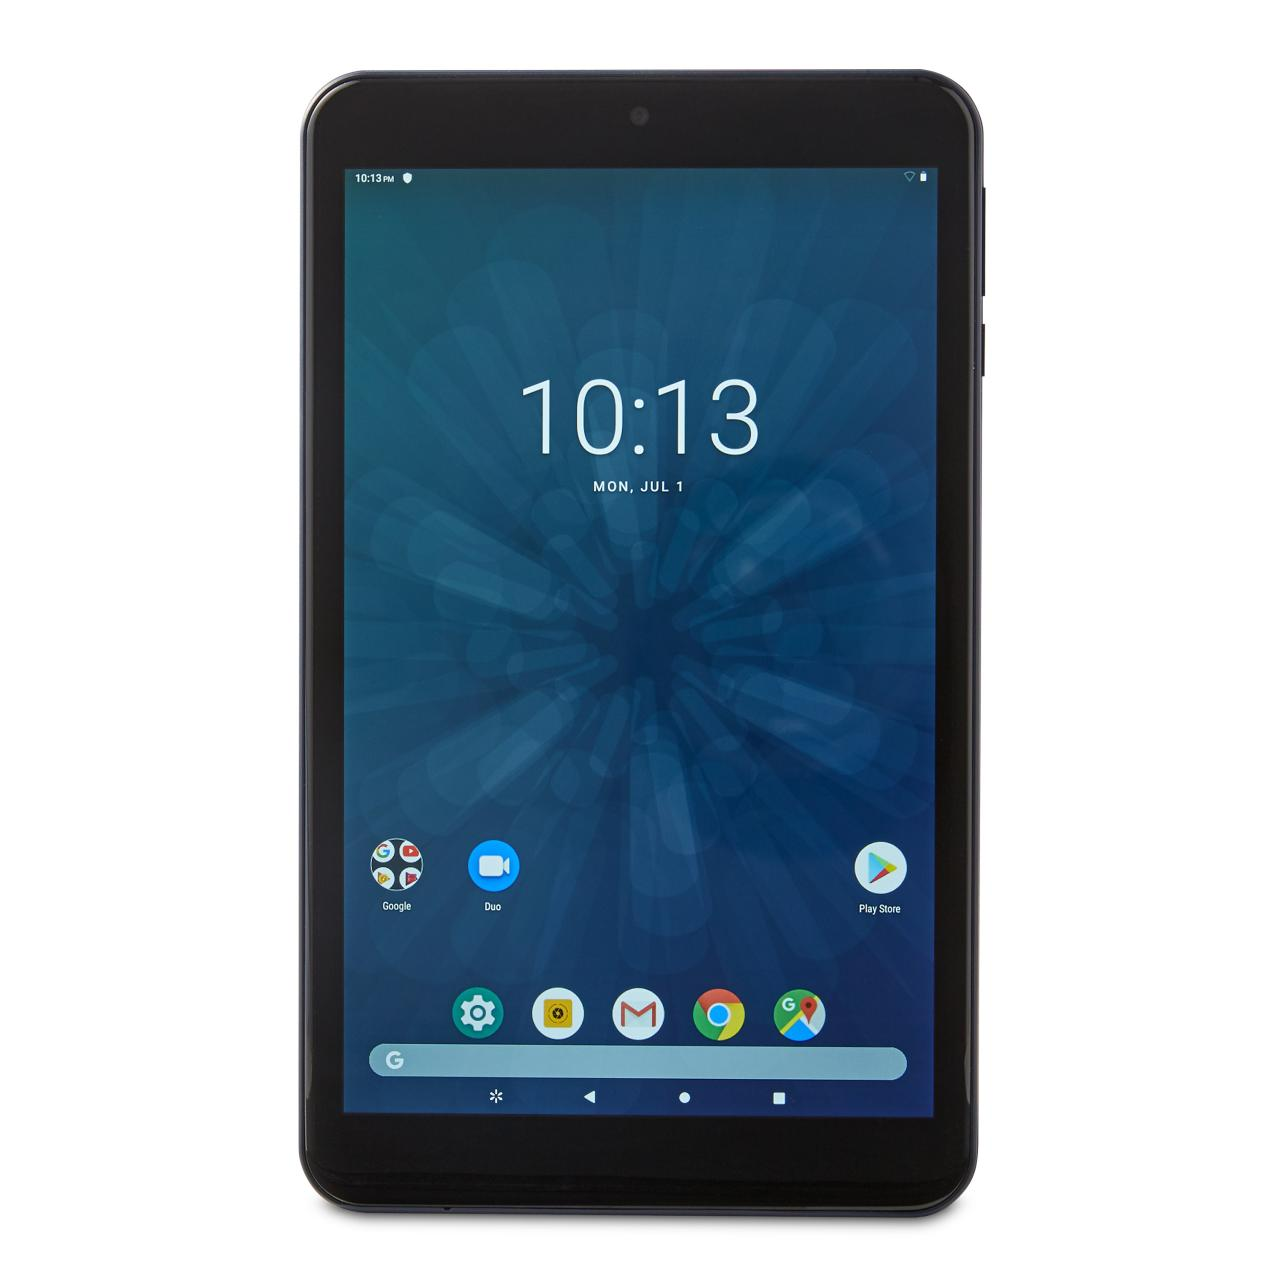 Walmart Onn Android tablets try to beat Amazon at its own